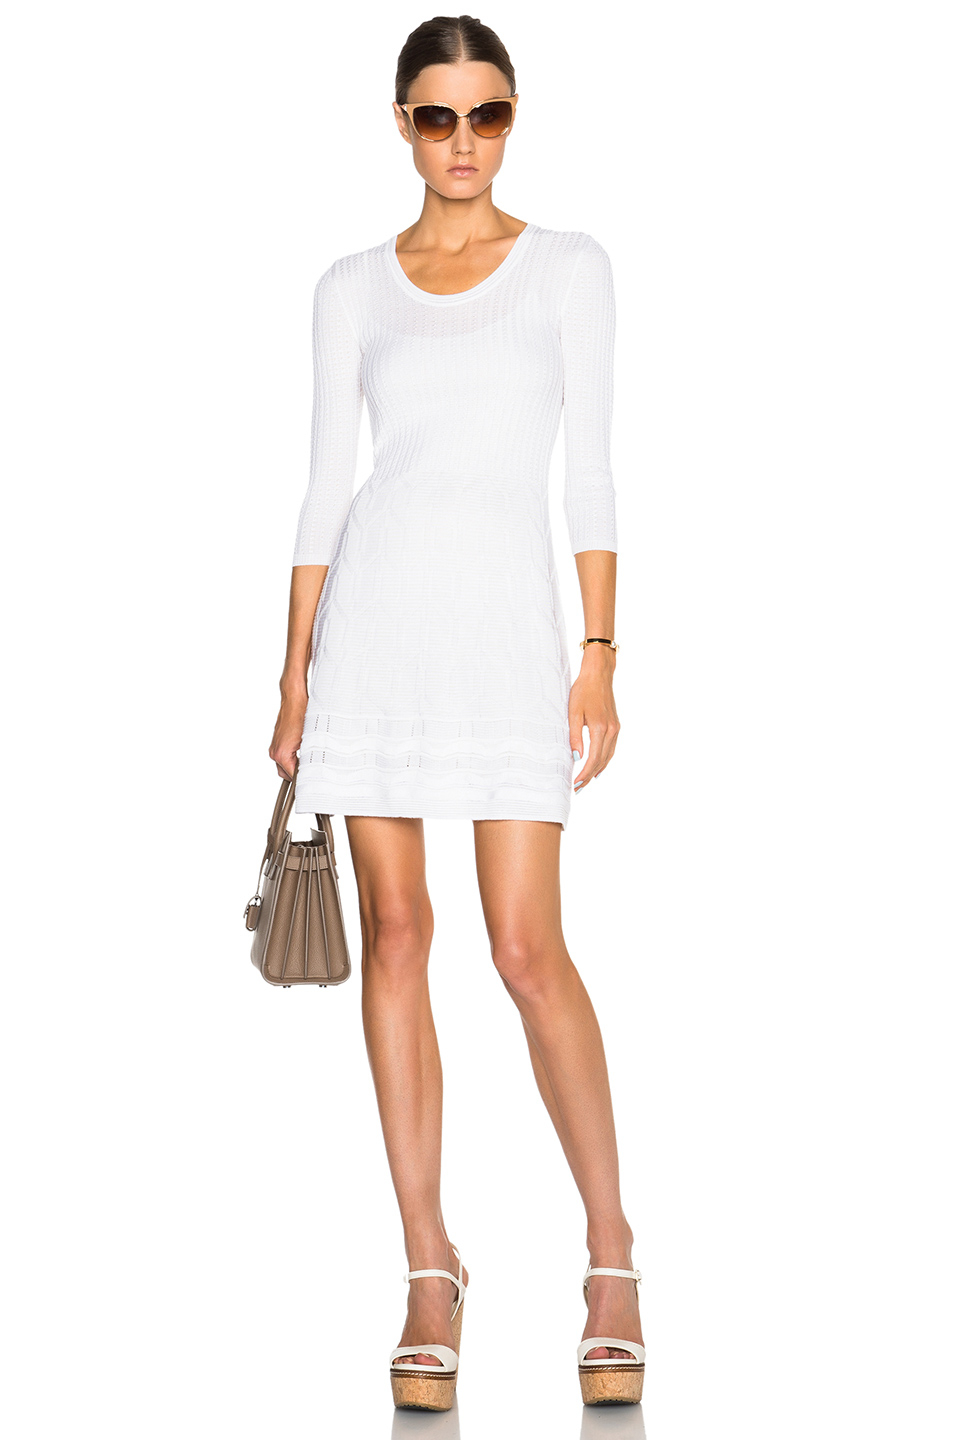 dfce48431d Lyst - M Missoni Solid Knit 3 4 Sleeve Dress in White